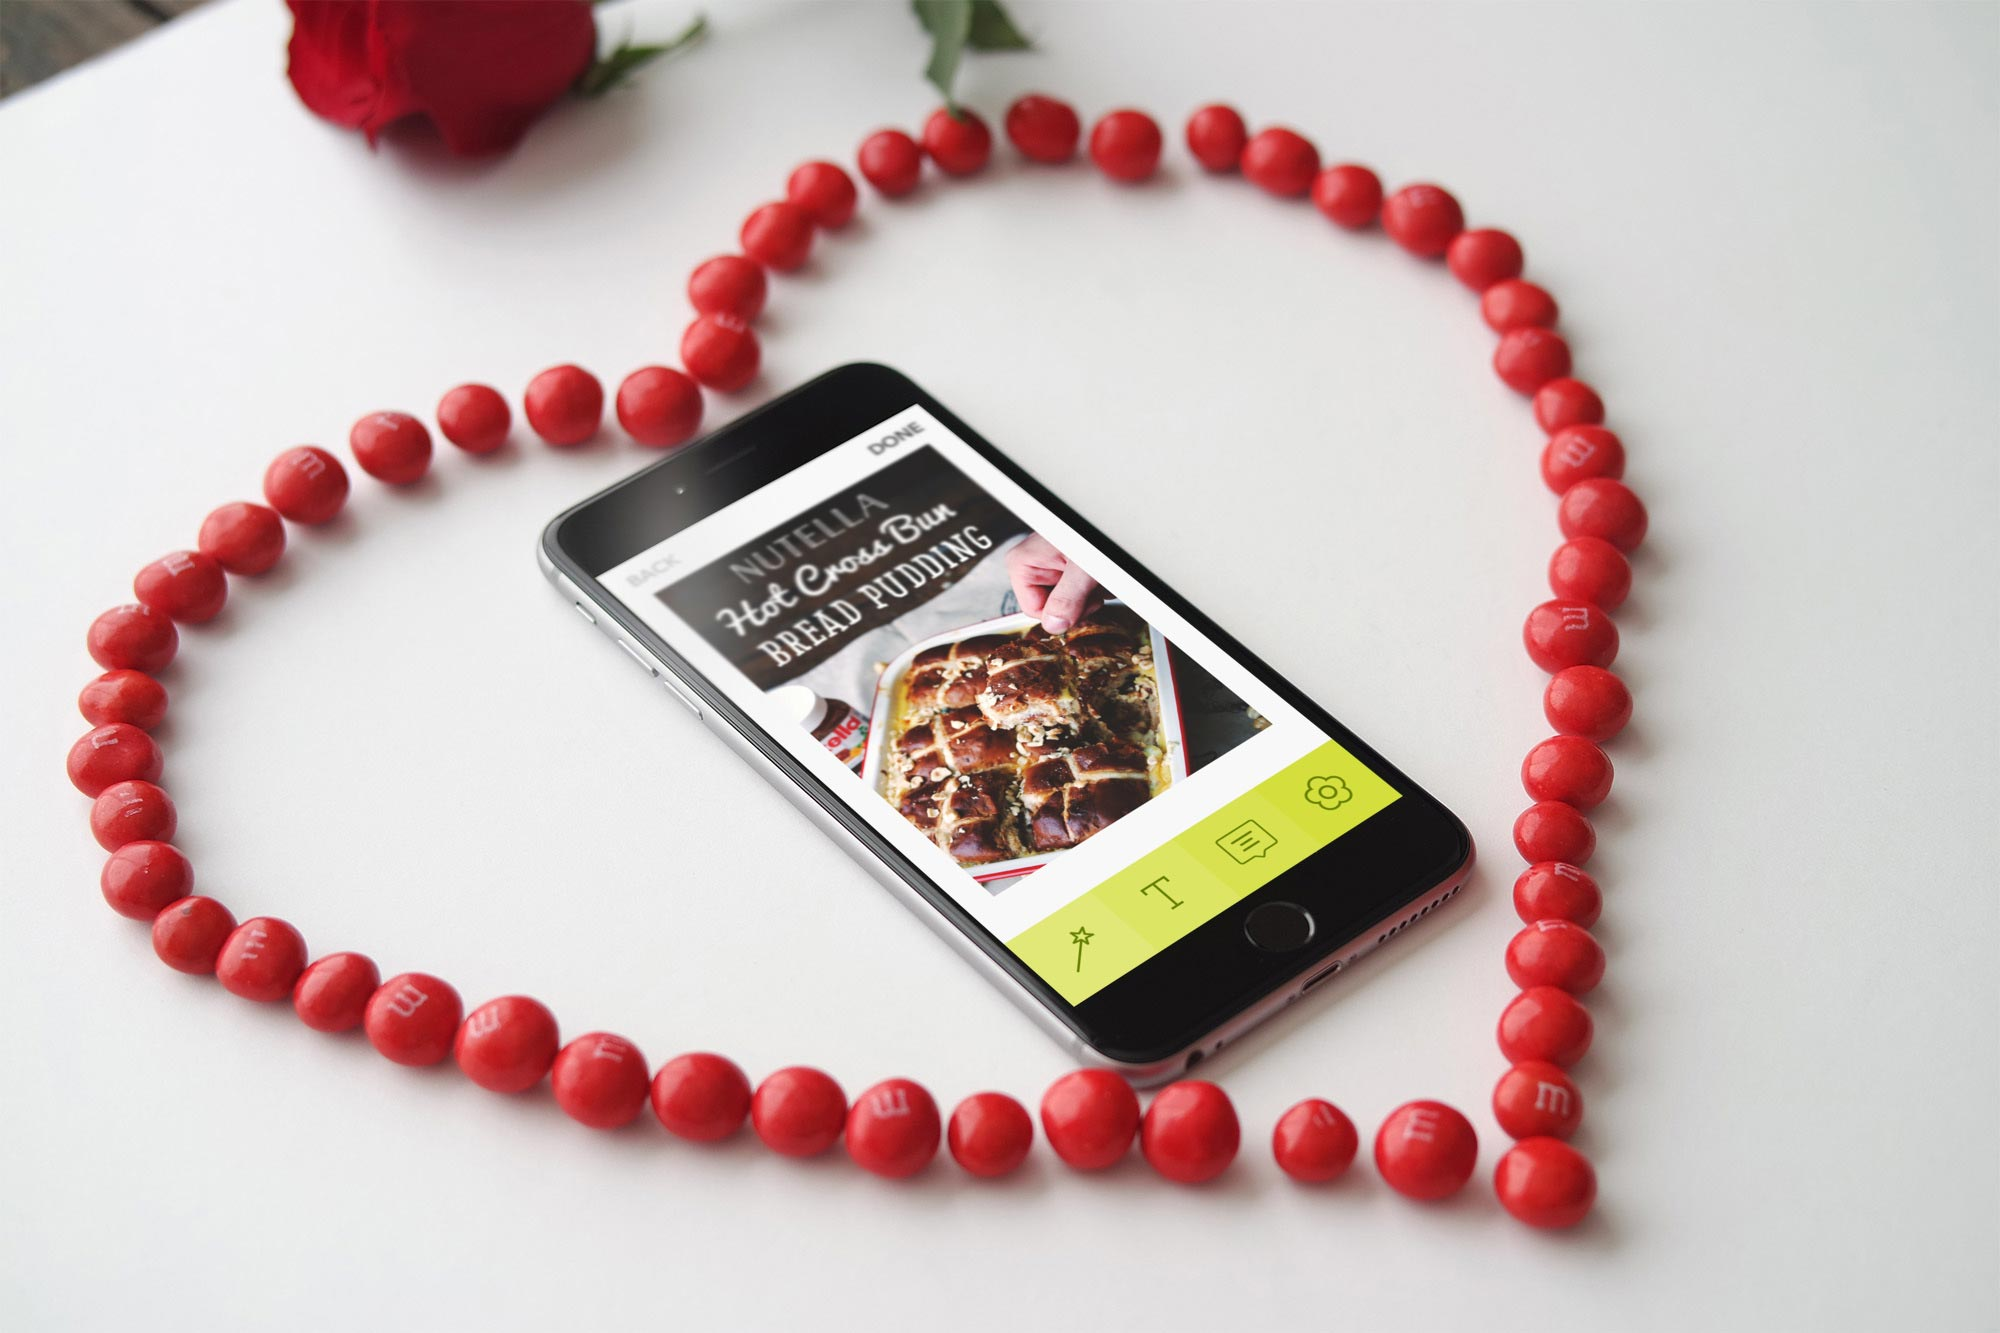 An iphone 6+ sitting in a heart made with red M&Ms, with the Little Moments App displayed on the screen.